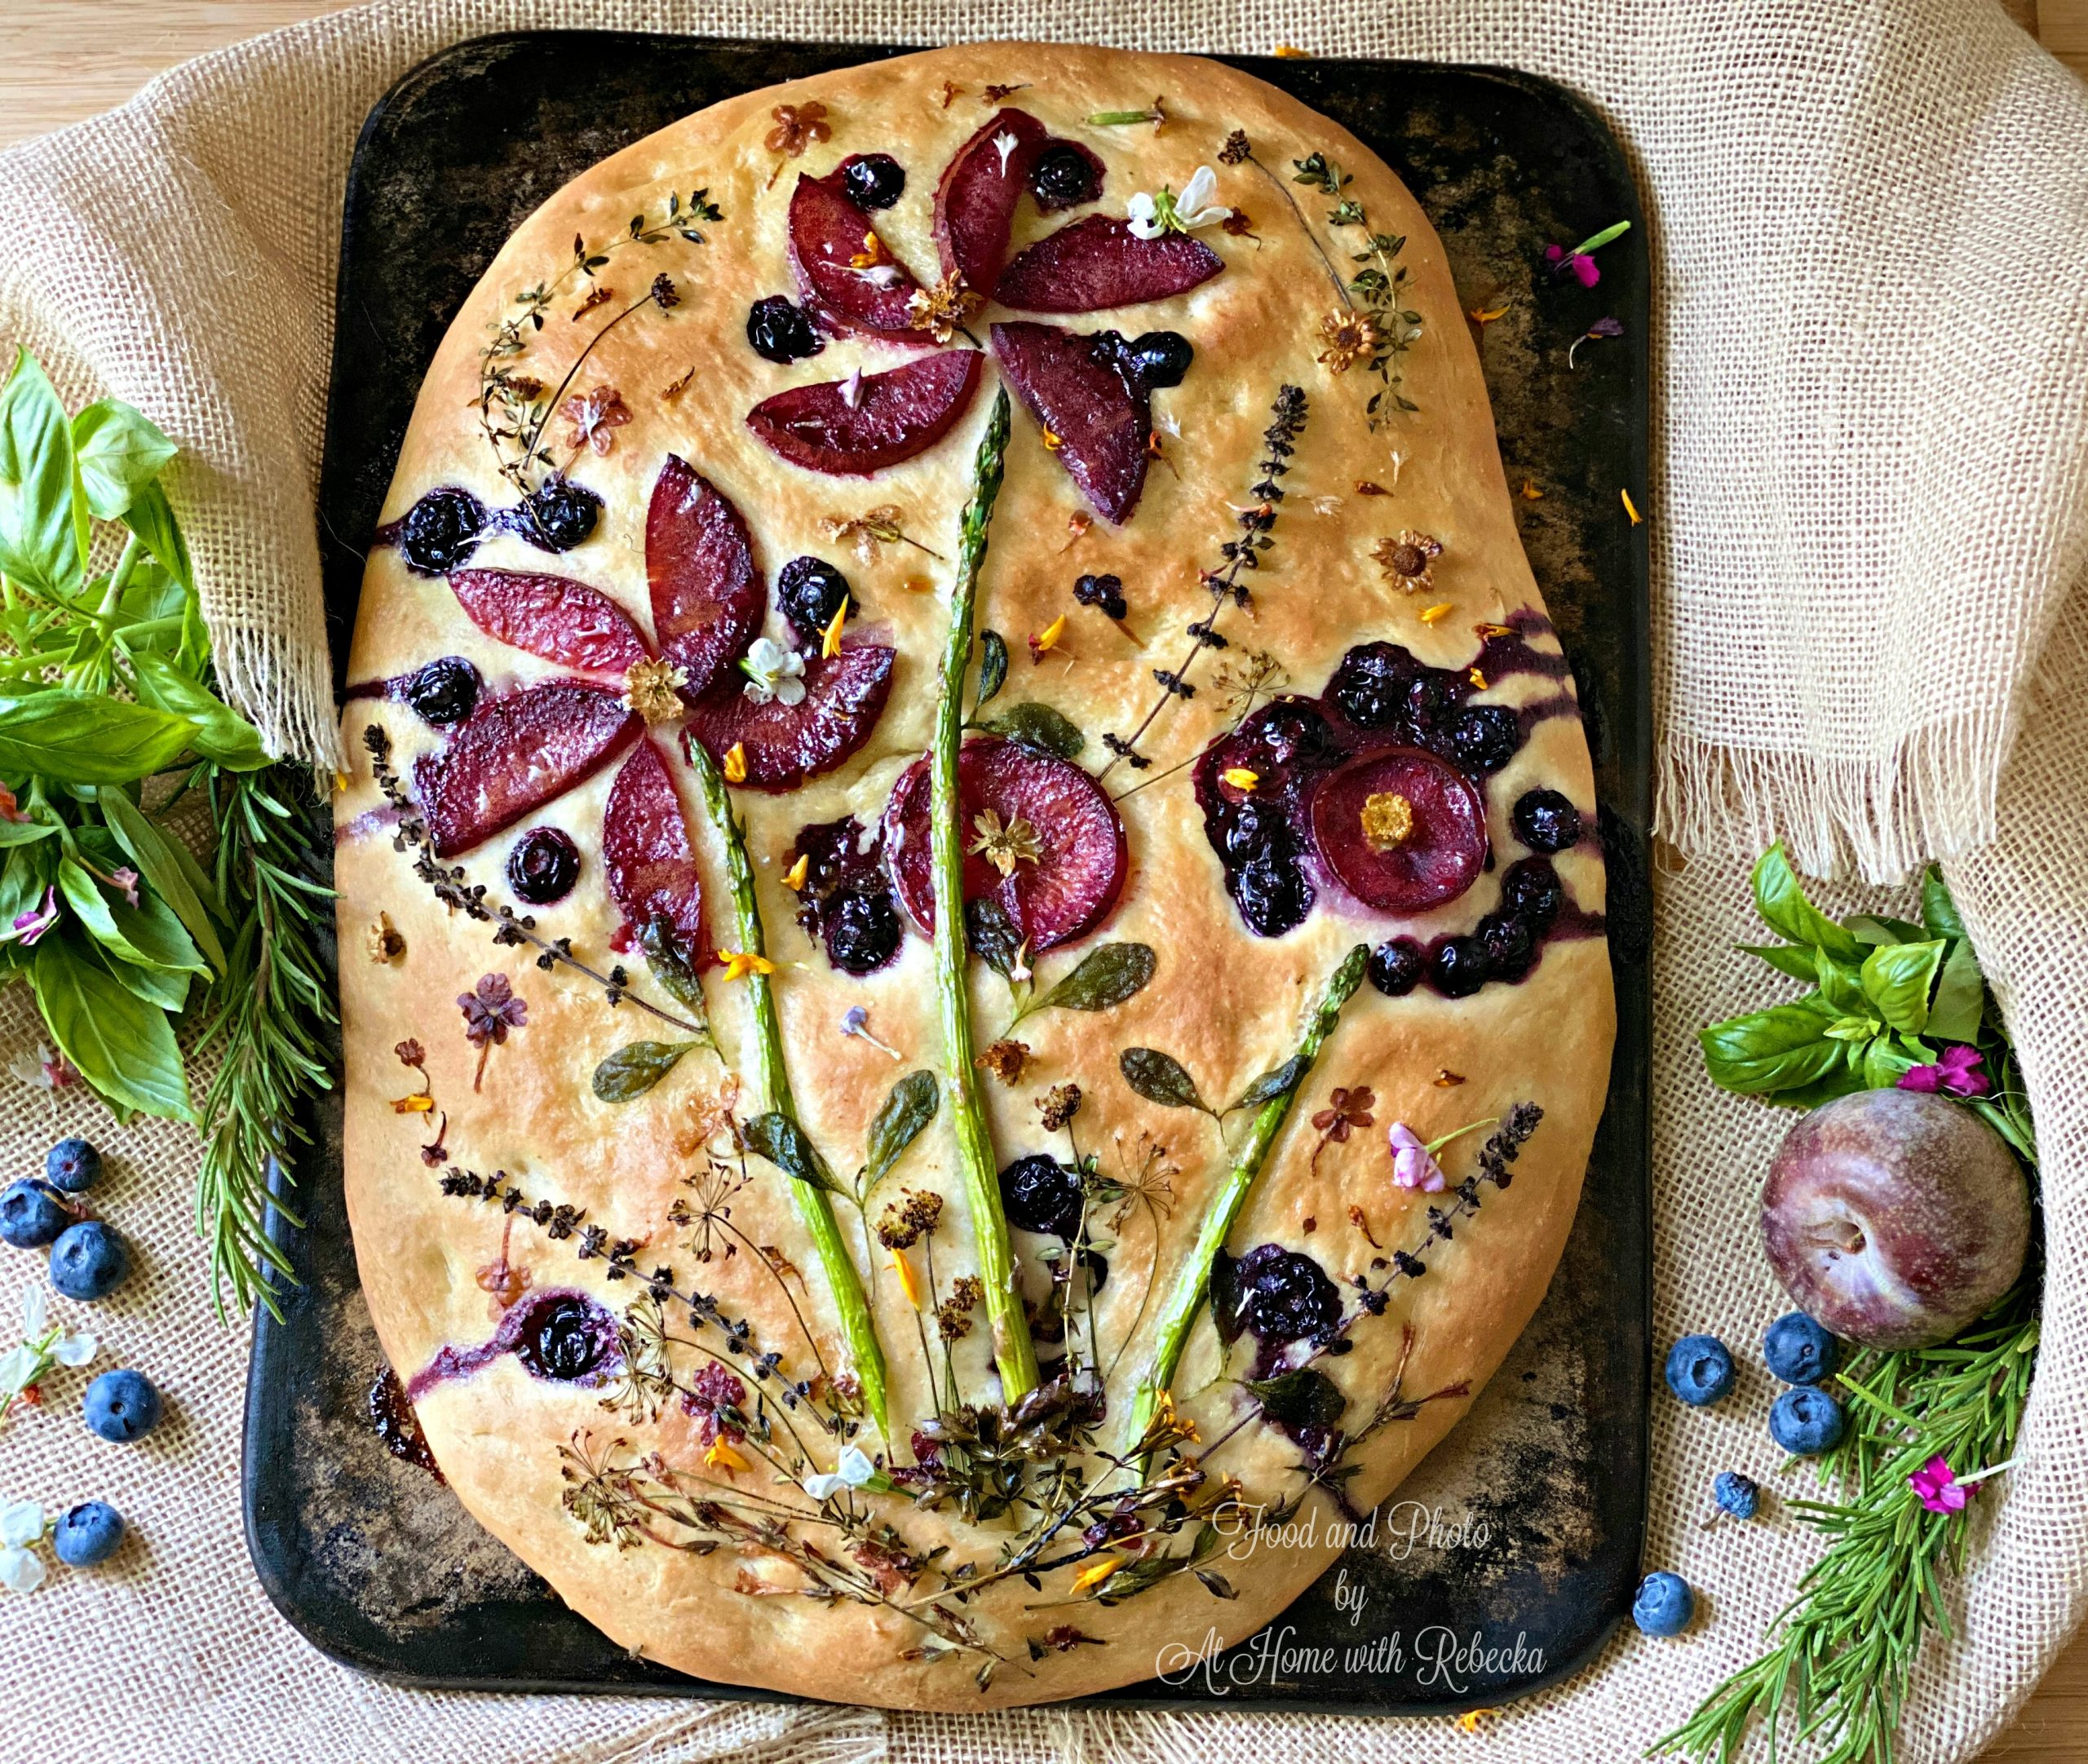 Focaccia Art Bread From Disappointment To Inspiration At Home With Rebecka